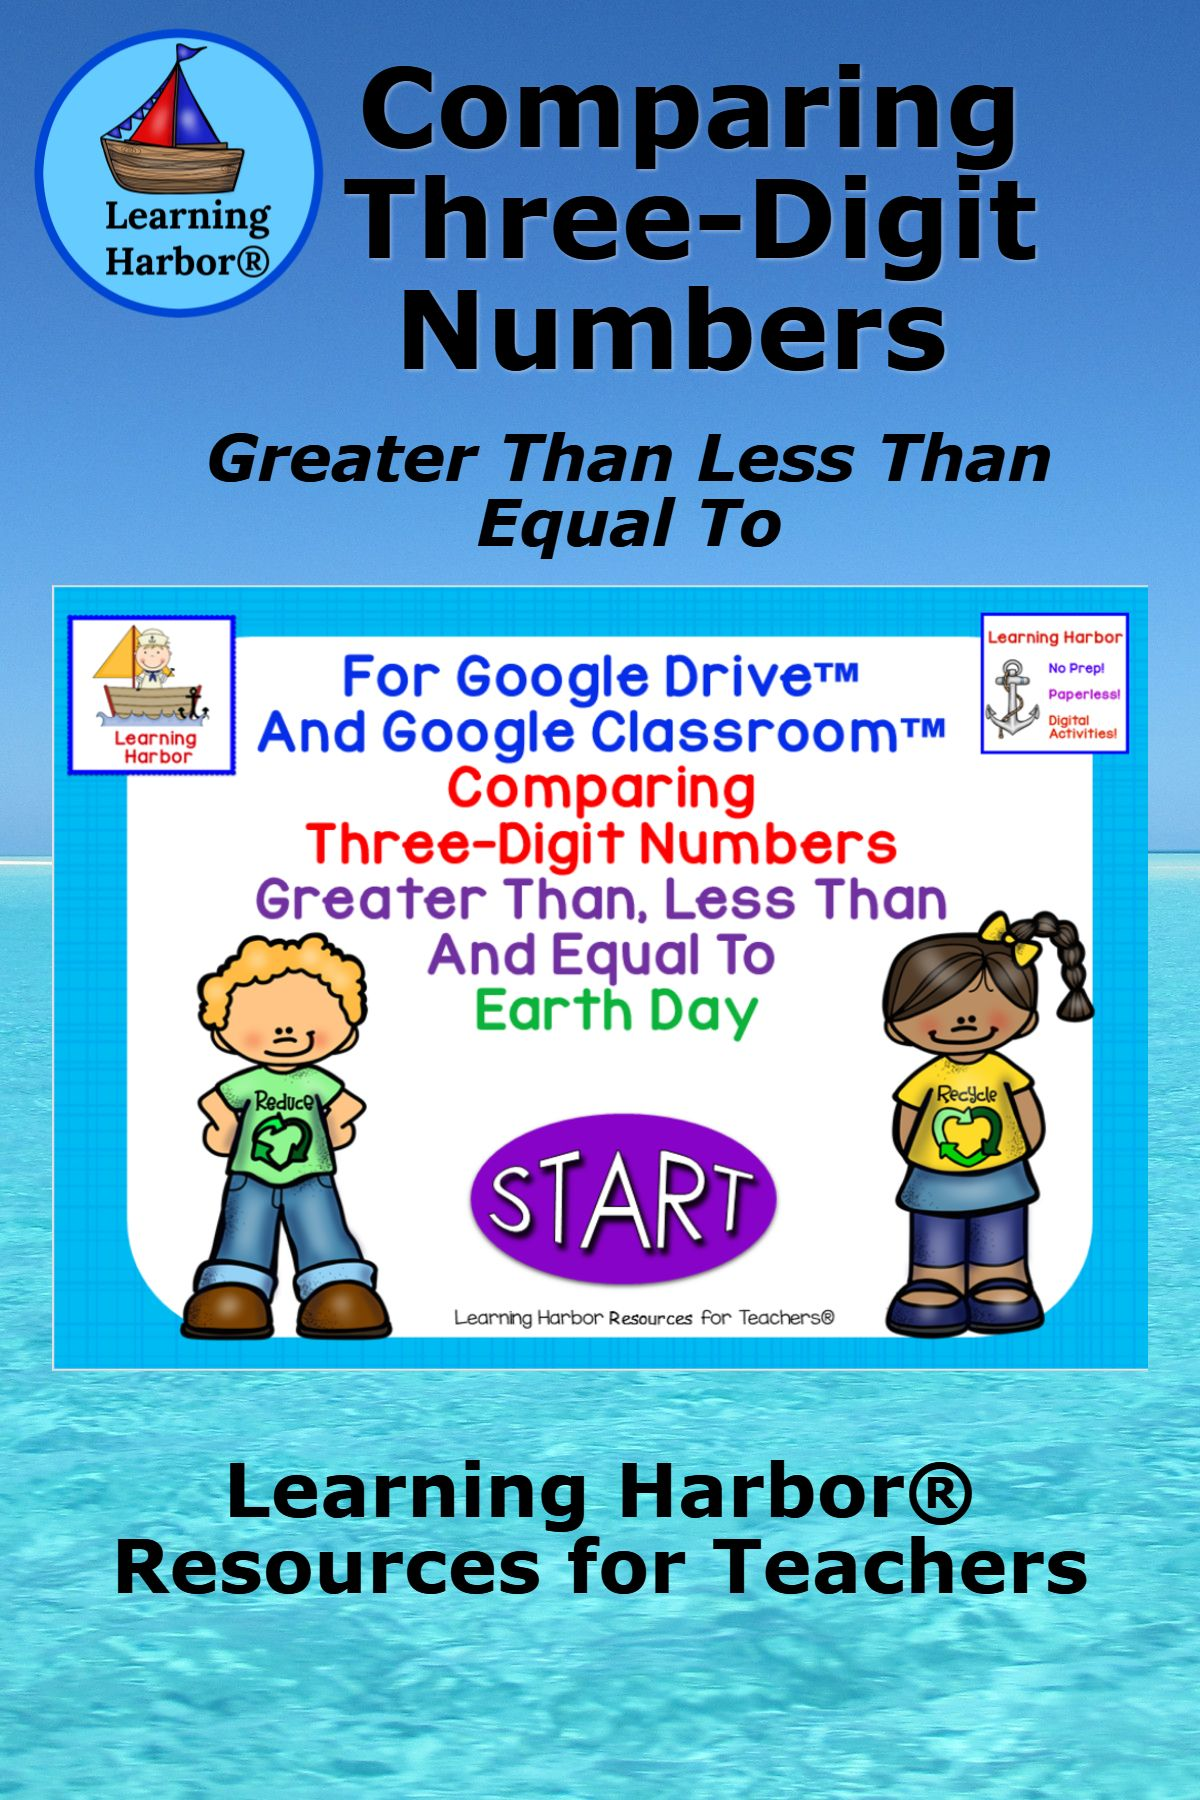 Comparing 3 Digit Numbers Greater Than Less Than Equal